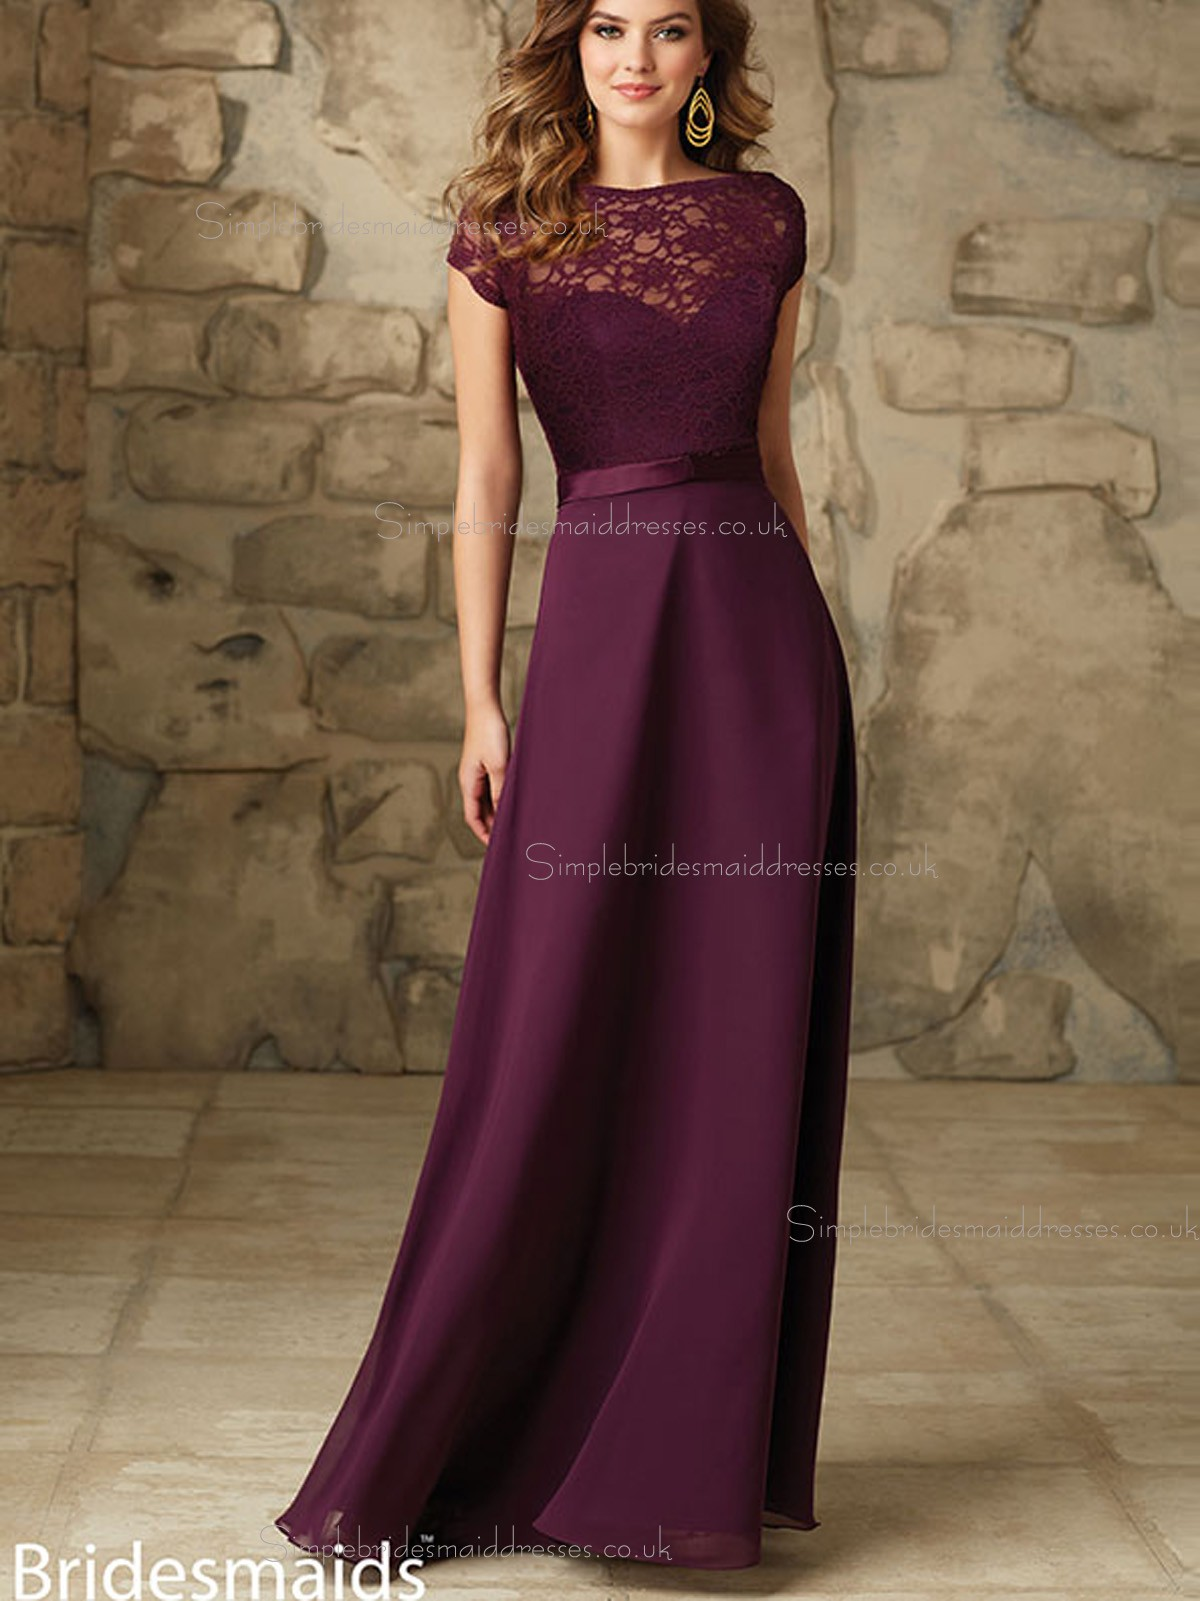 Bridesmaid dresses online uk cheap bridesmaid dresses beautiful grape chiffon floor length beading bridesmaid dress ombrellifo Images